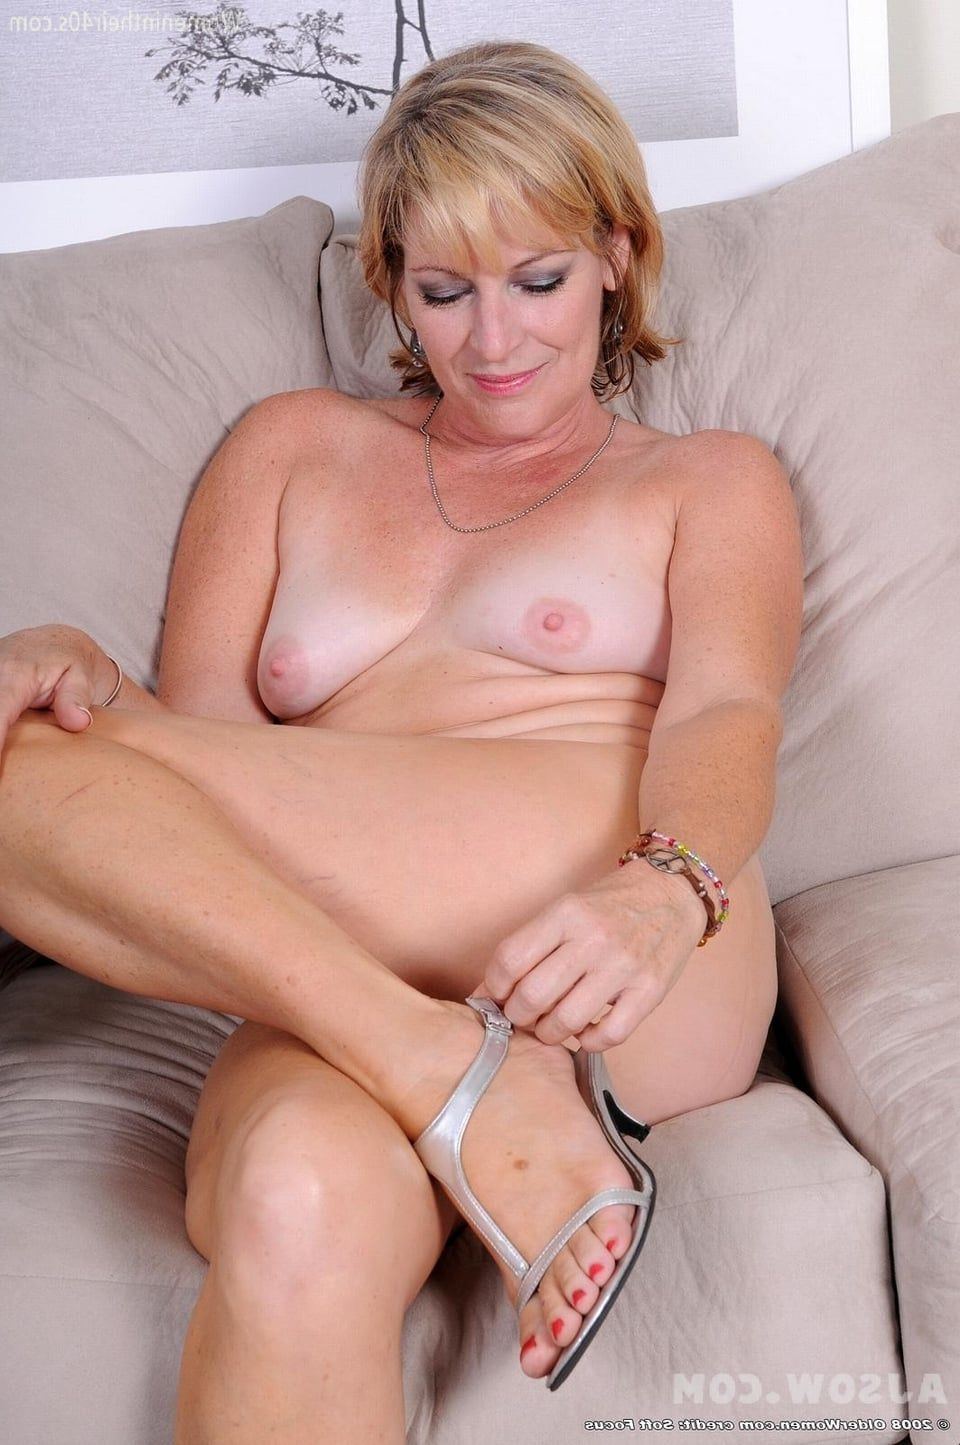 Girls .Wish amature milf xxx like it